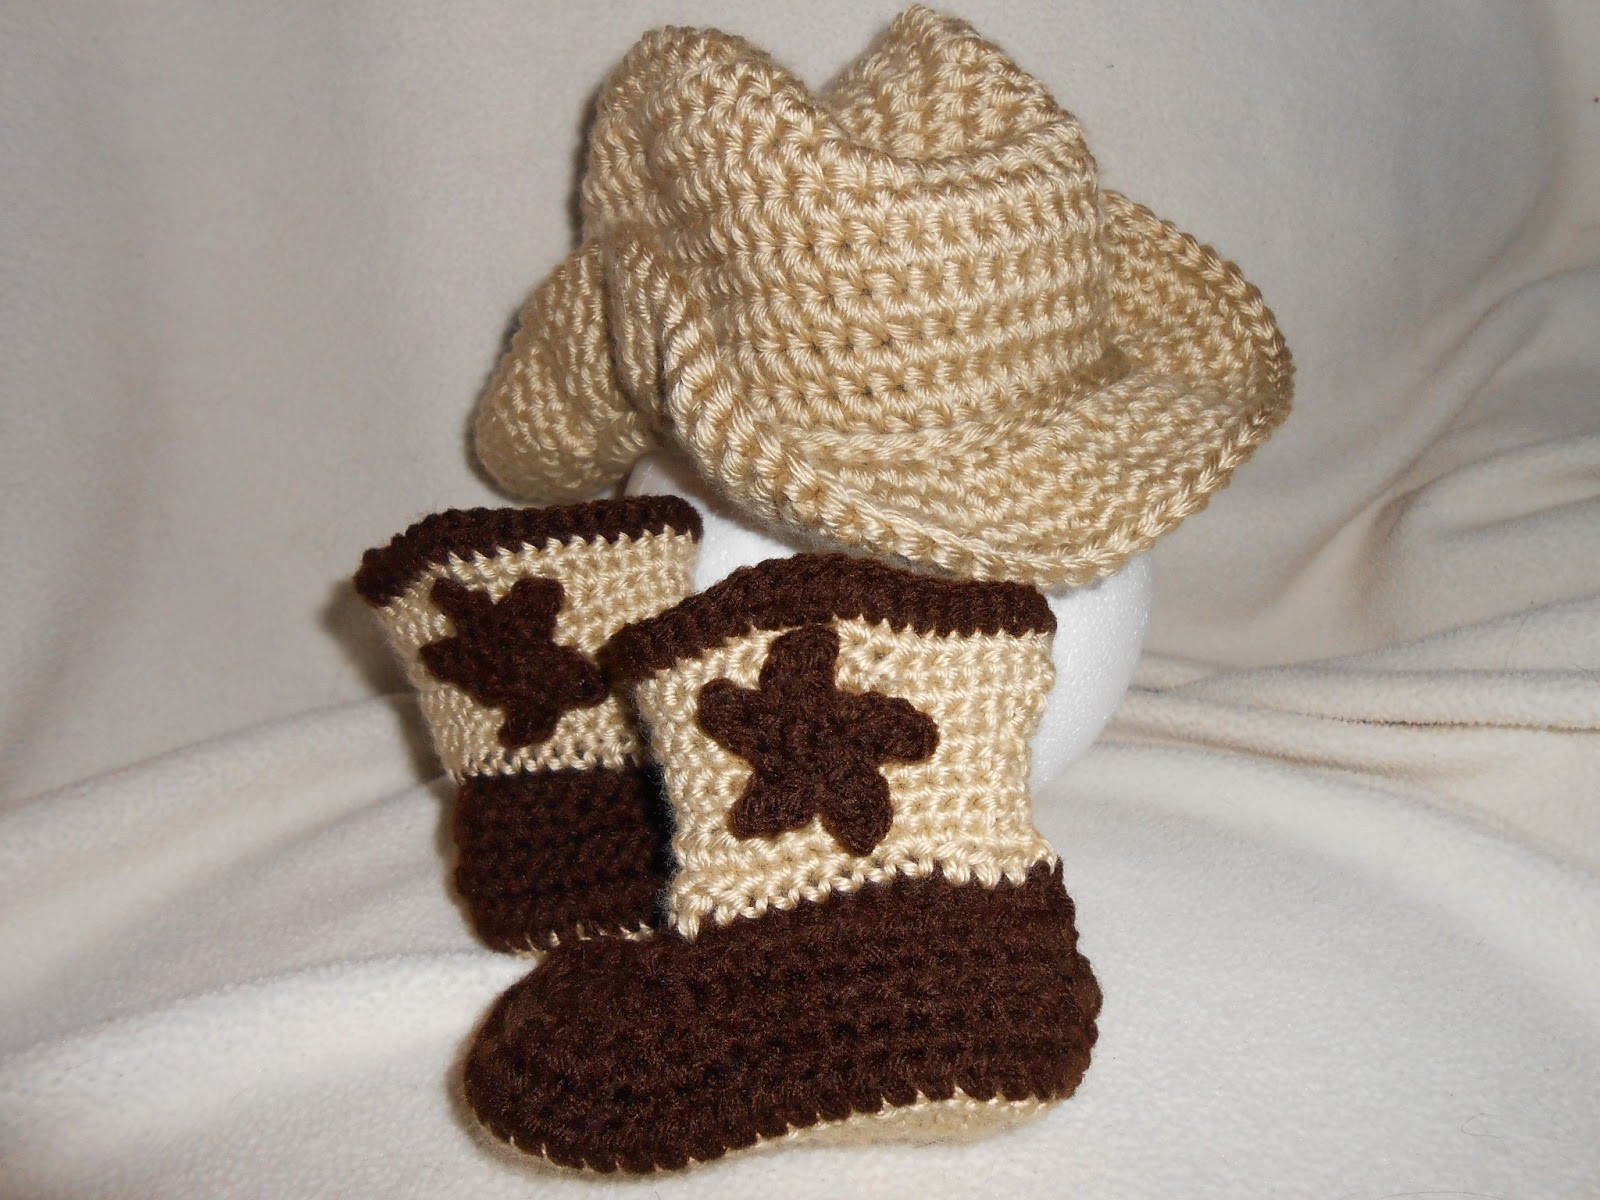 Crochet Cowboy Boots Lovely 69 Creative Patterns Of Crochet Baby Hats Of Marvelous 49 Pictures Crochet Cowboy Boots